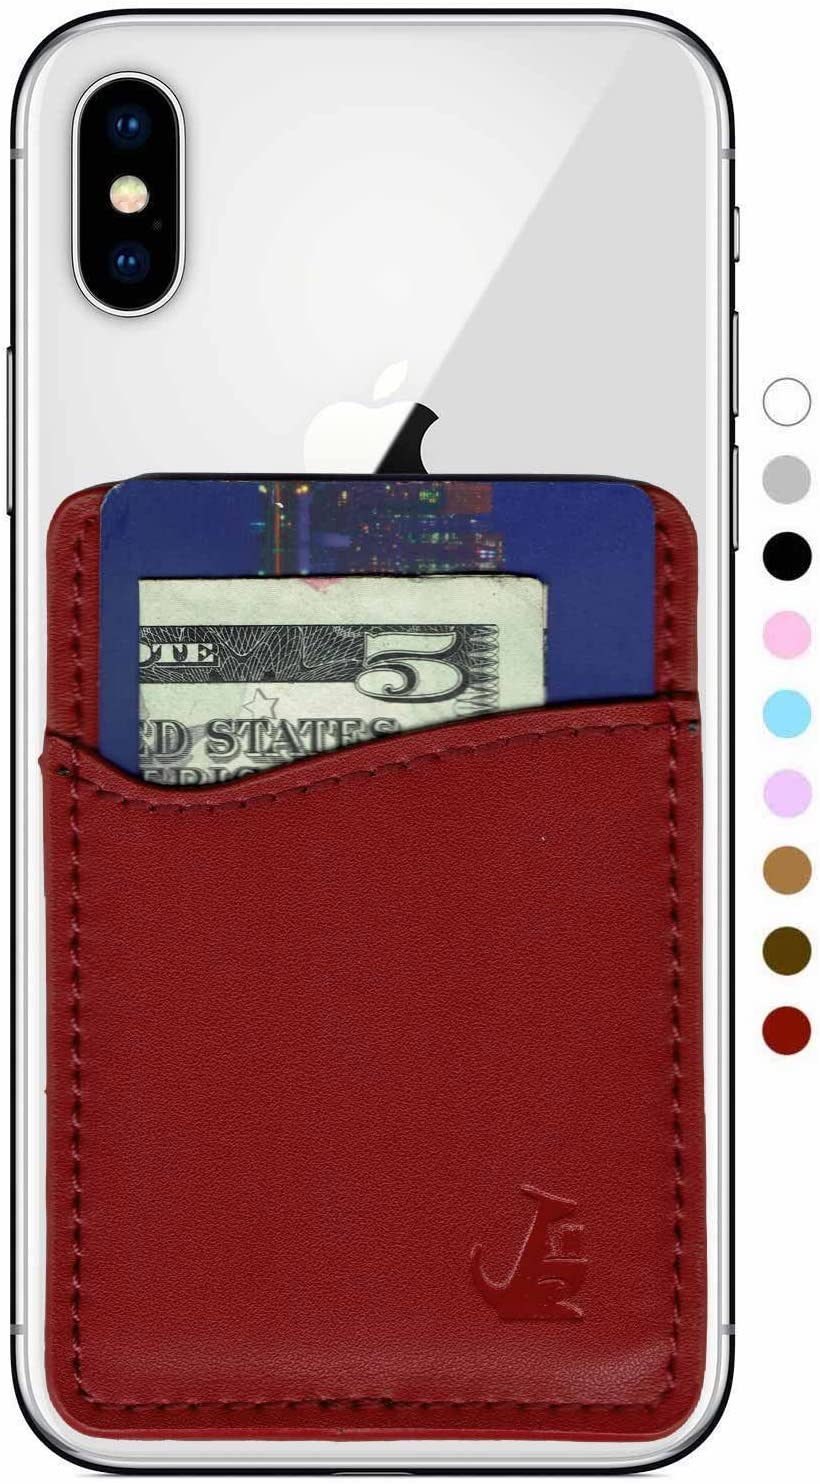 WALLAROO Premium Leather Phone Card Holder Stick On Wallet for iPhone and Android Smartphones (Maroon Red Leather)